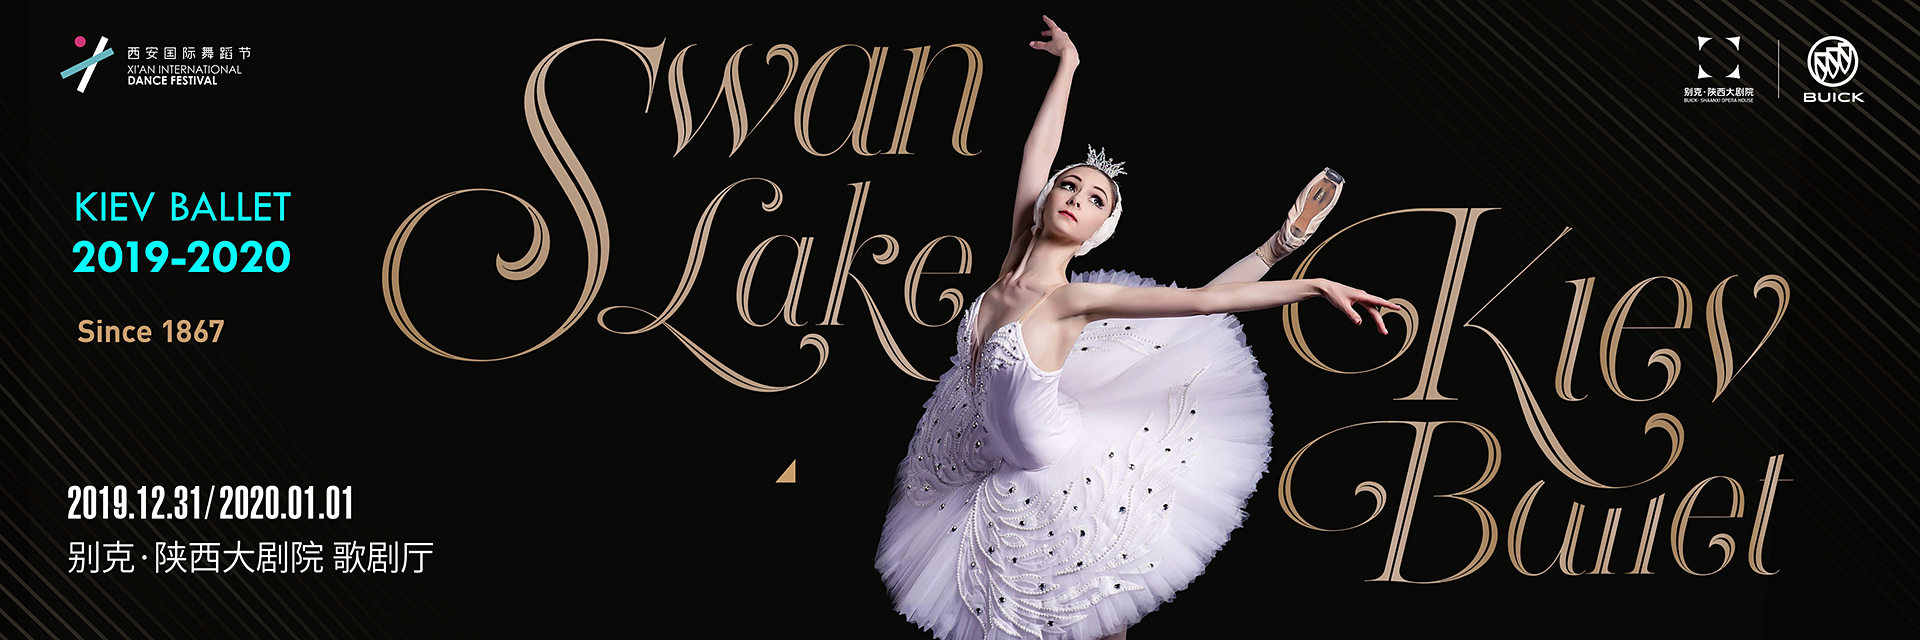 "Keiv Ballet ""Swan Lake"" 【2nd Xi'an International Dance Festival】"